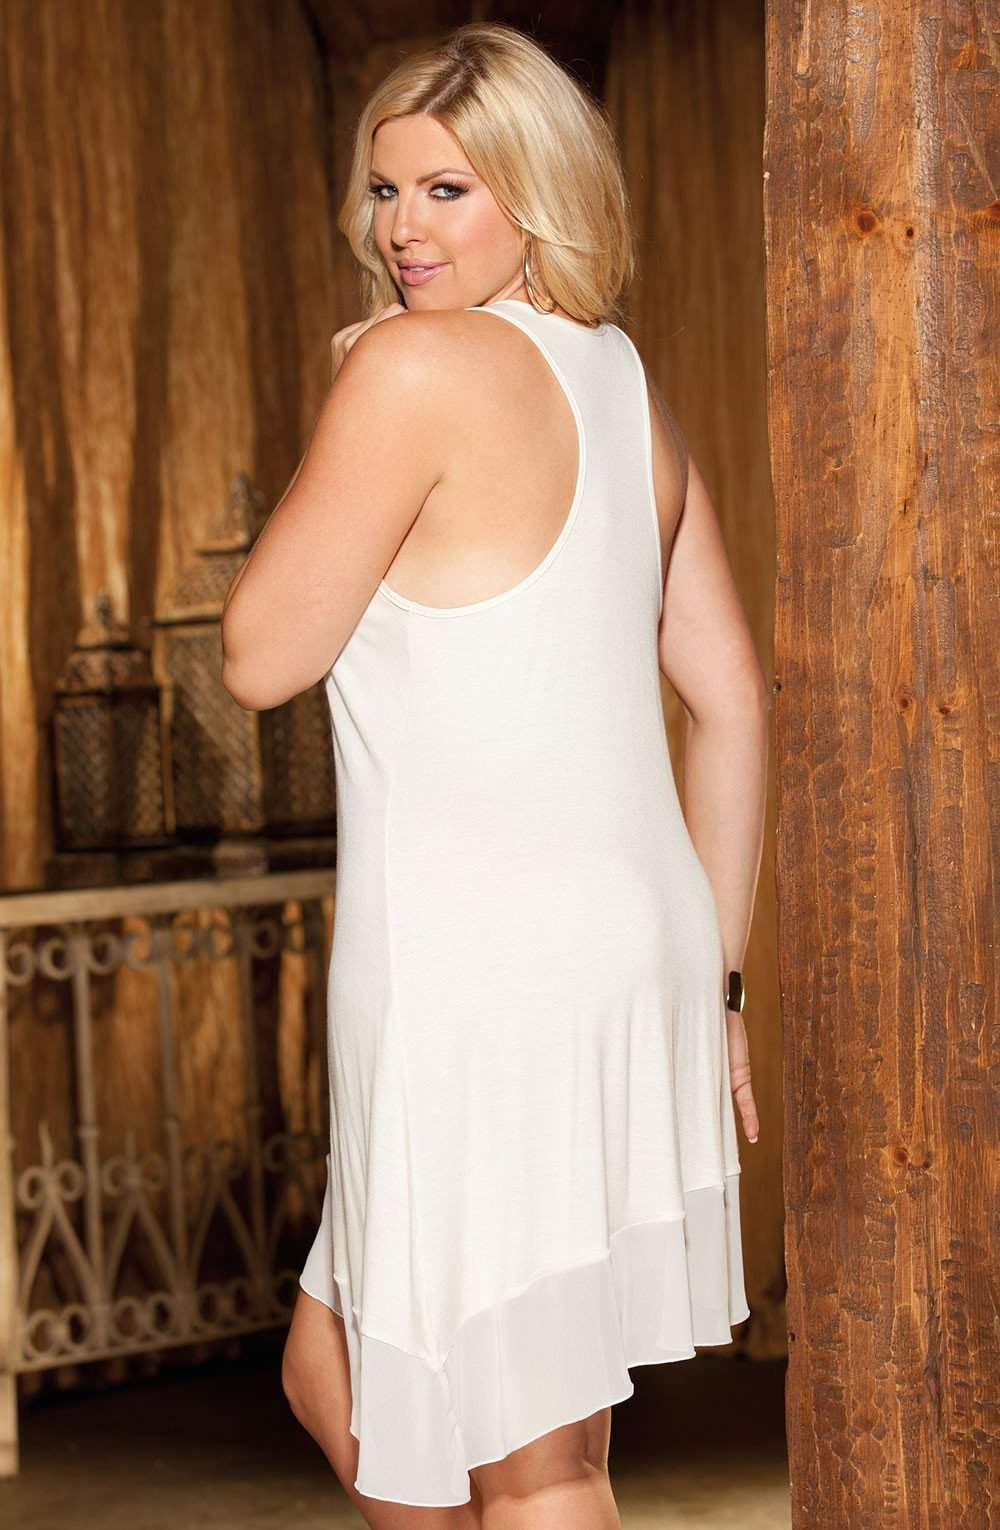 X3252 Nightdress in Ivory by Shirley of Hollywood - Shirley of Hollywood - Katys Boutique Lingerie USA